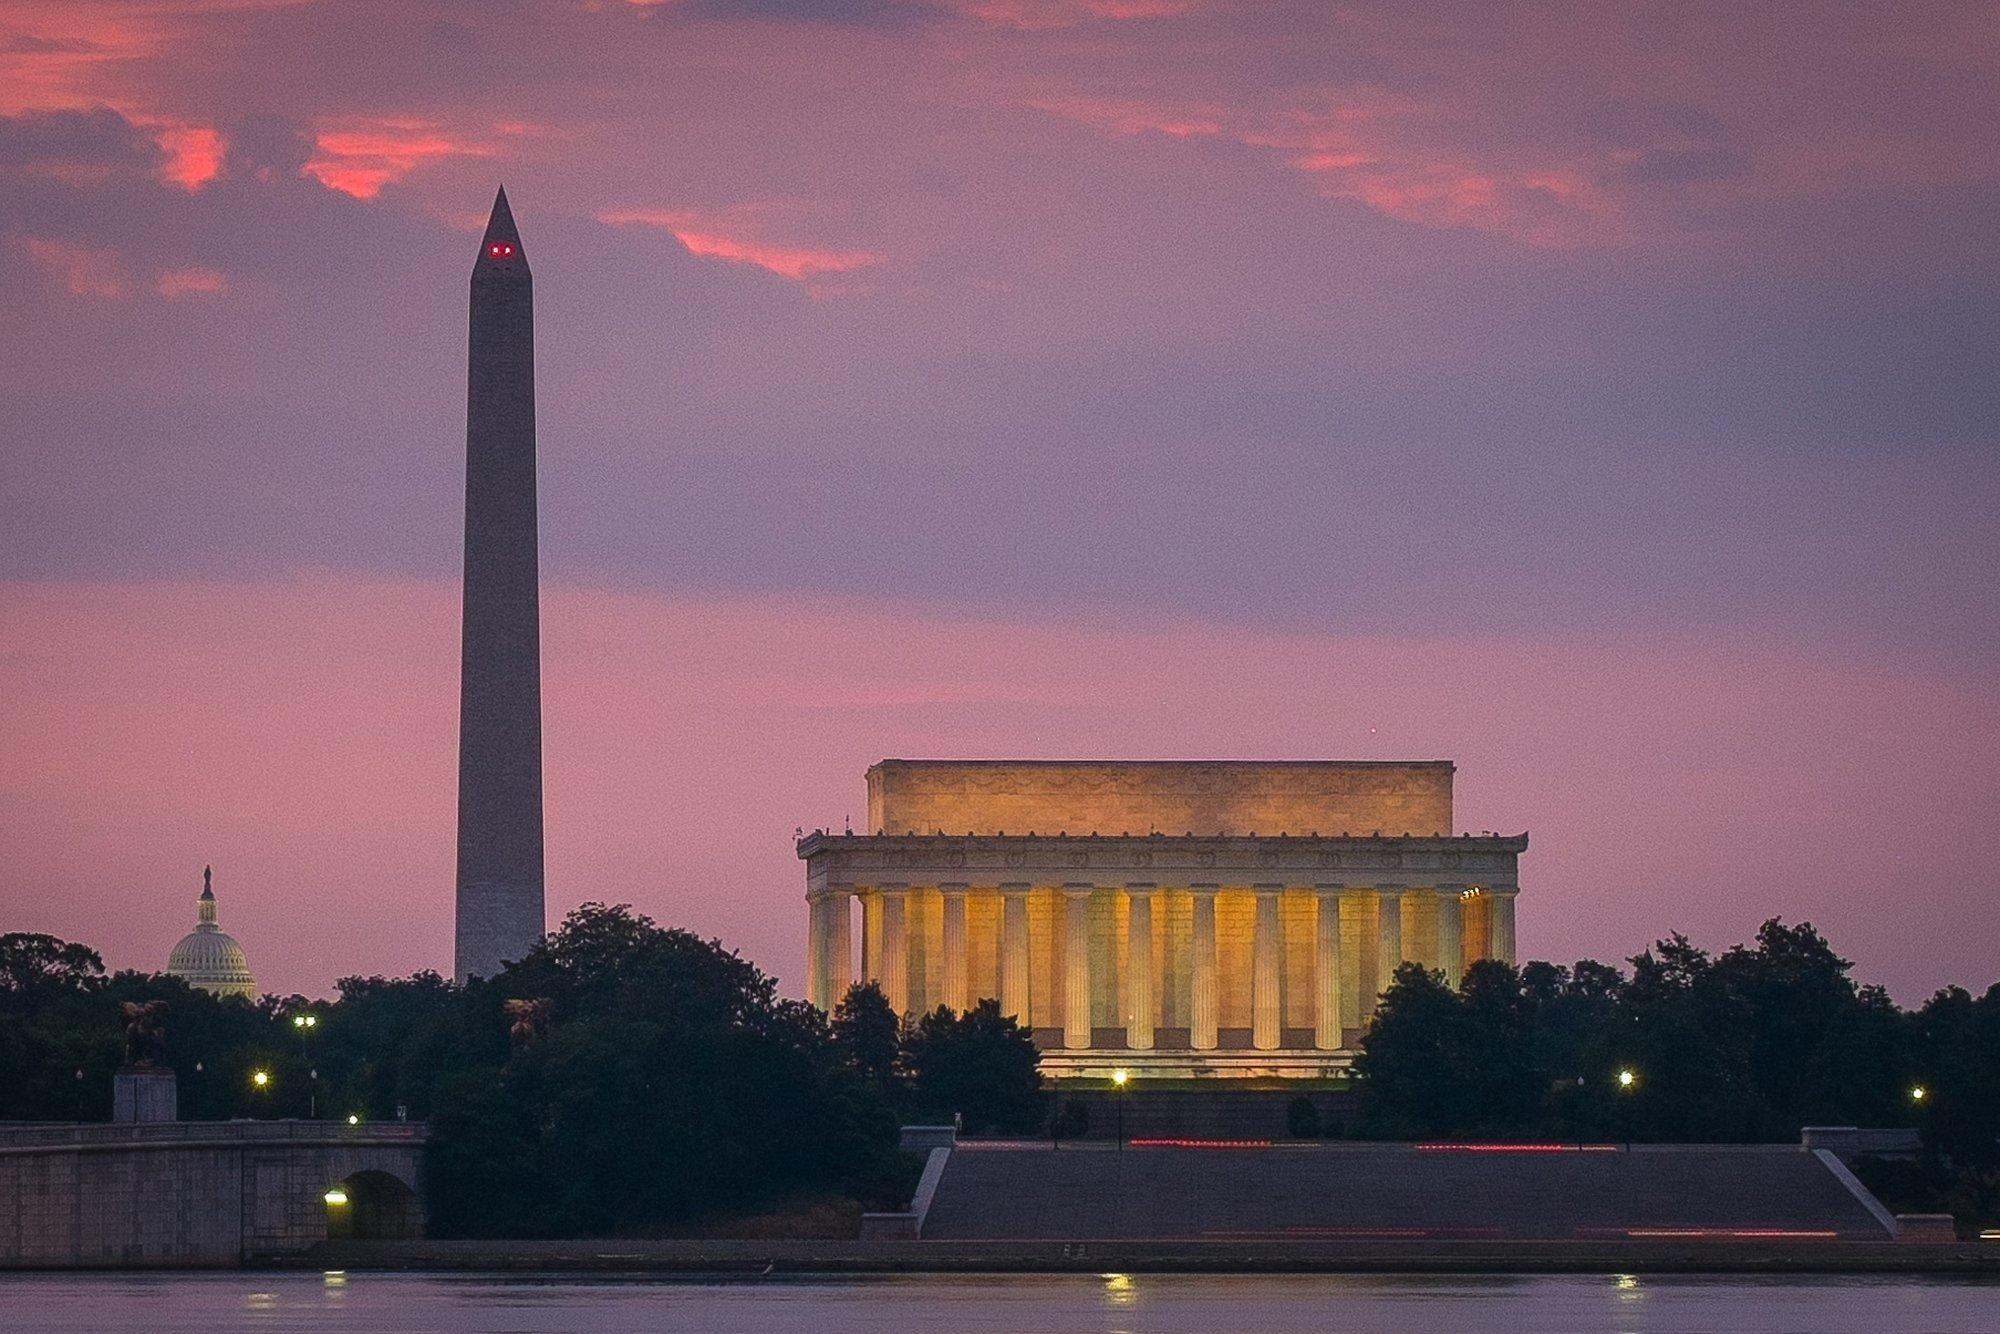 FILE - This June 21, 2014 shows sunrise over, from left, the Capitol Dome, Washington Monument and Lincoln Memorial in Washington. A federal appeals court has ruled in favor of t